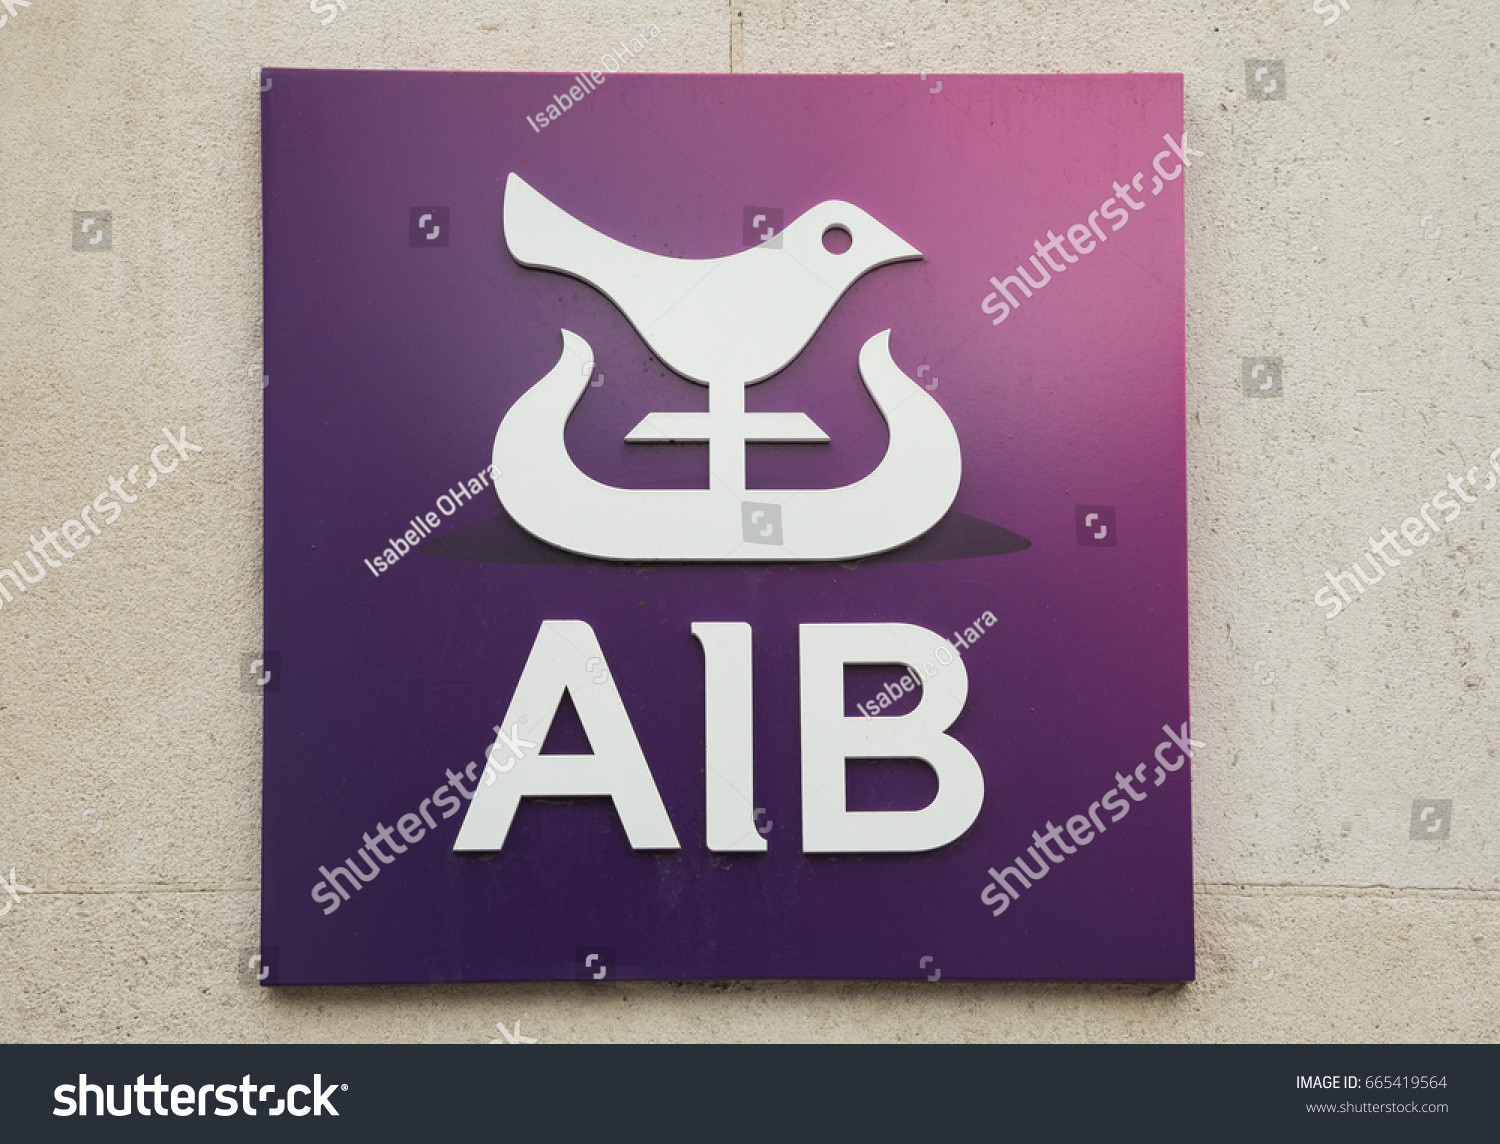 Dublin ireland june 2 2017 allied stock photo 665419564 shutterstock dublin ireland june 2 2017 allied irish banks aib logo xflitez Choice Image